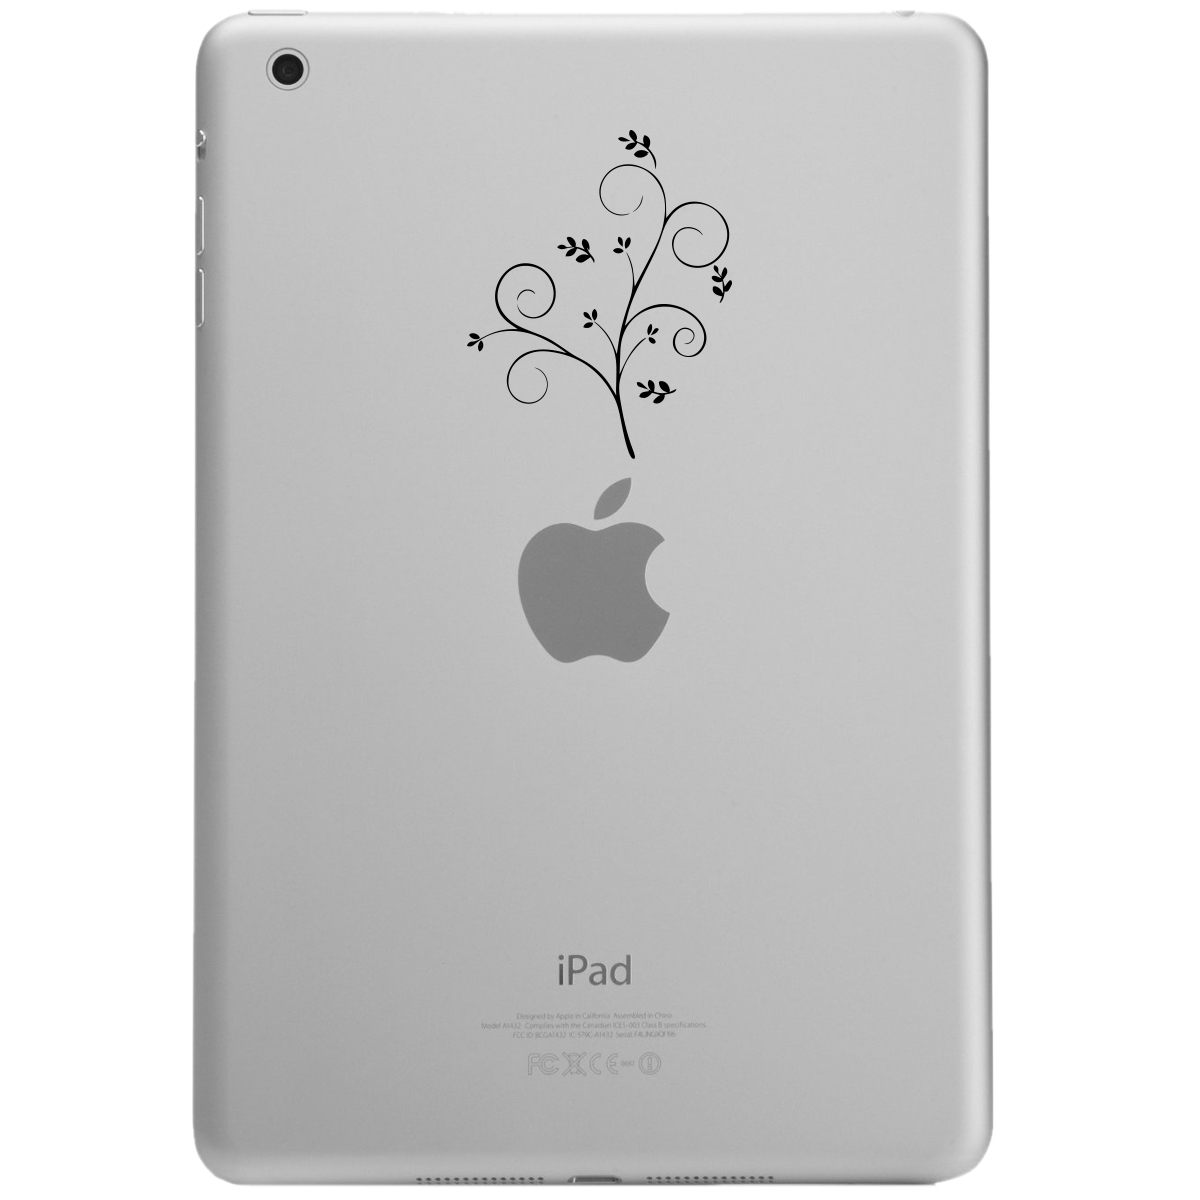 Pretty Floral Branch iPad Tablet Vinyl Sticker Decal